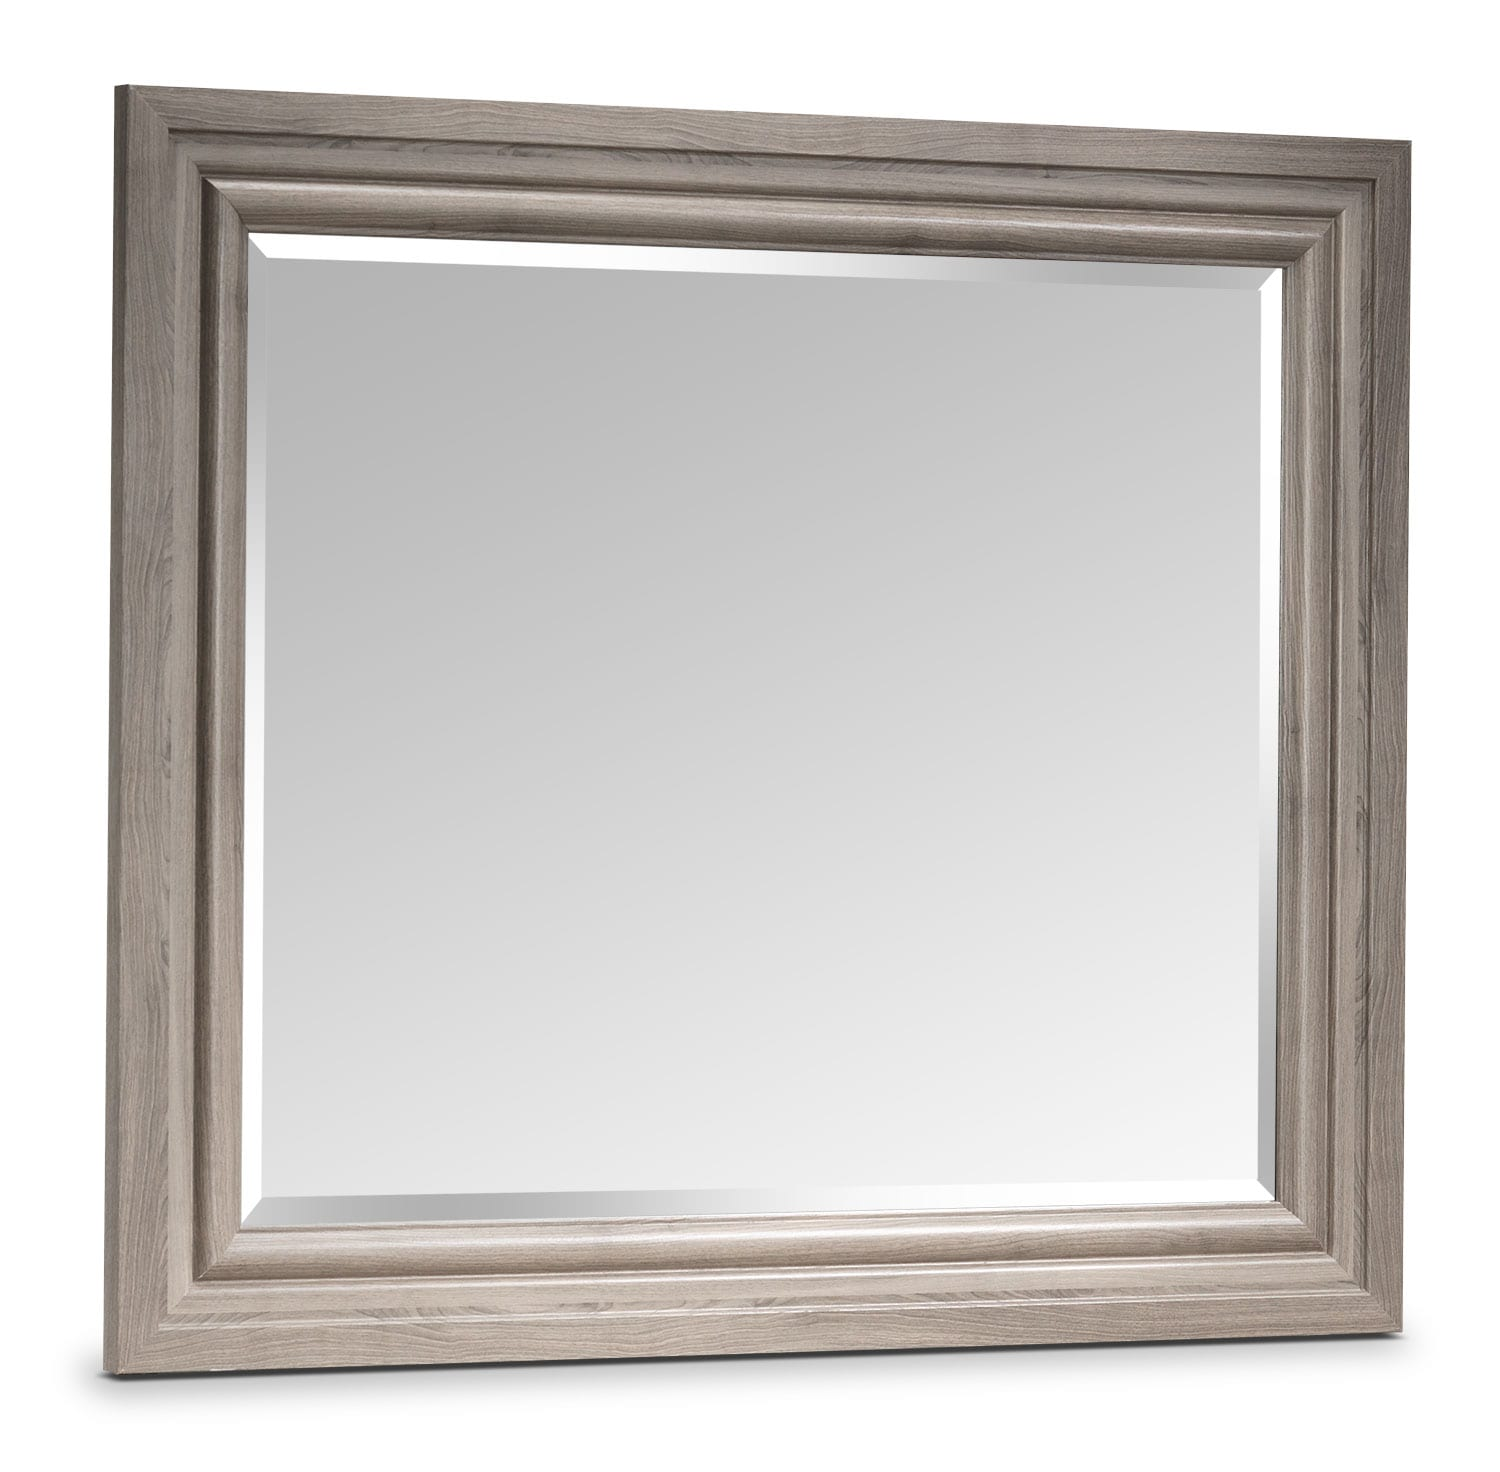 Bedroom Furniture - Franklin Mirror - Taupe